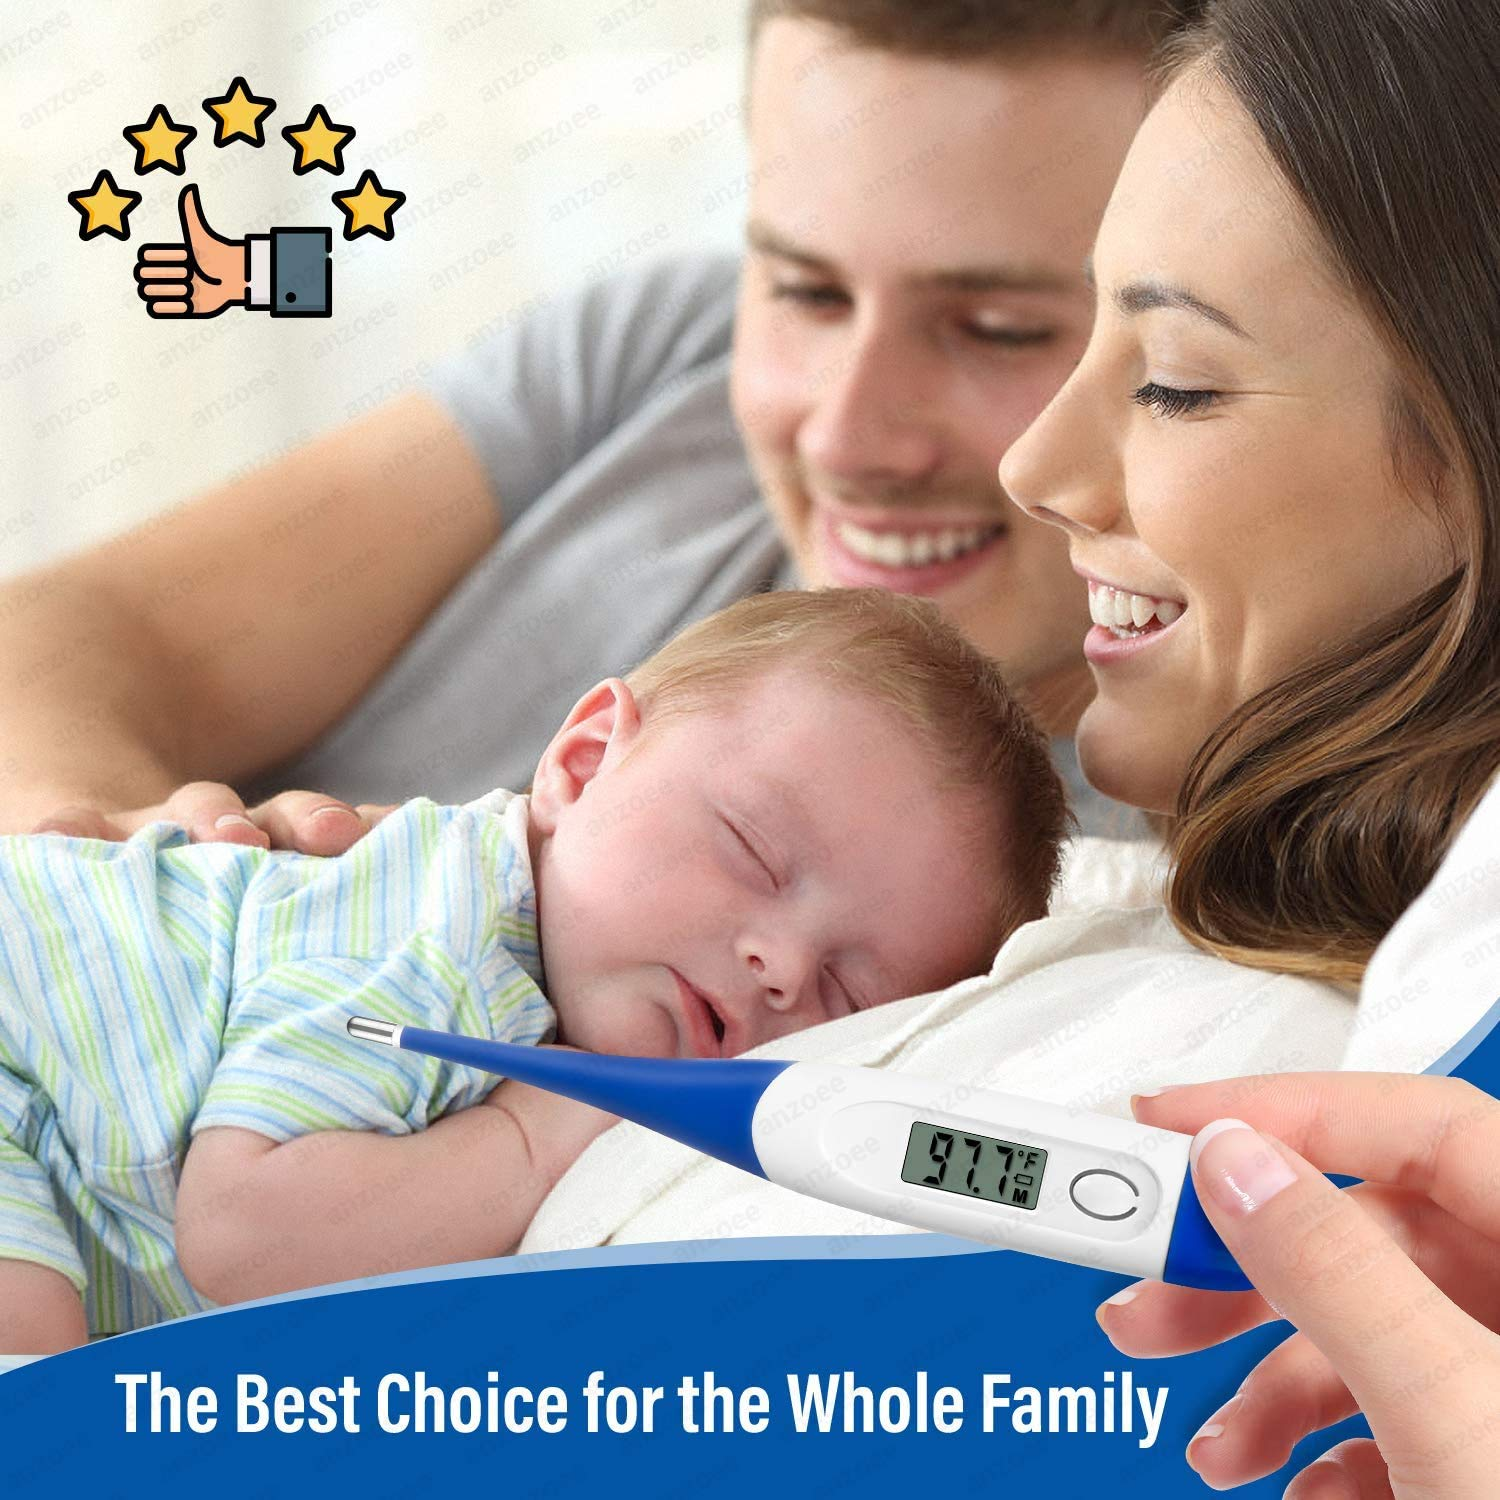 Oral Digital Thermometer Portable Fast Readings Temperature Meter with Accurate Measurement for Baby Kids Adults LCD Digital Thermometer